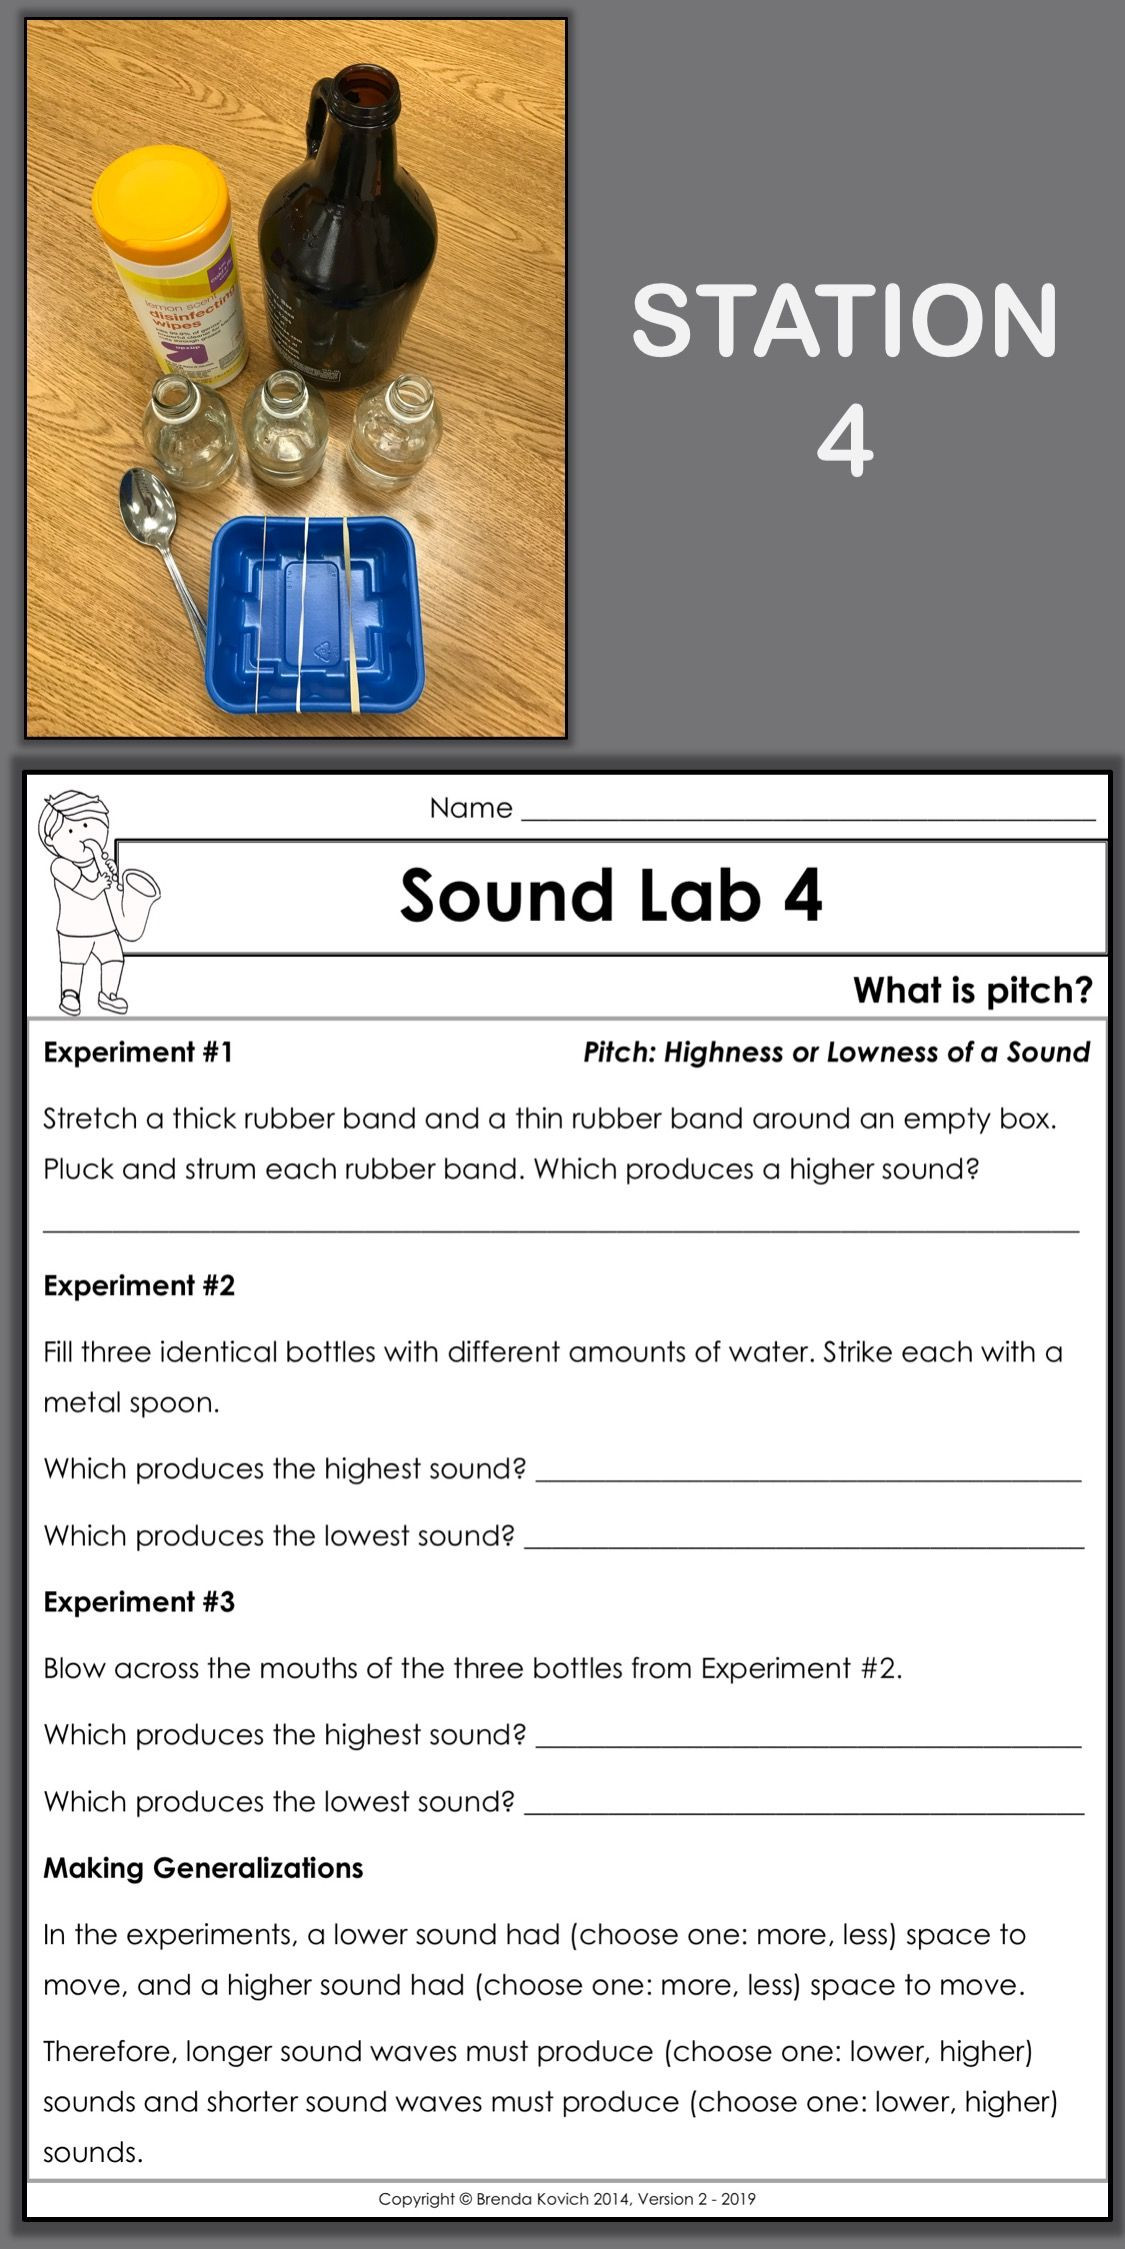 Sound Energy Worksheets 4th Grade Enjoy Teaching sound with Physics Activities for Kids